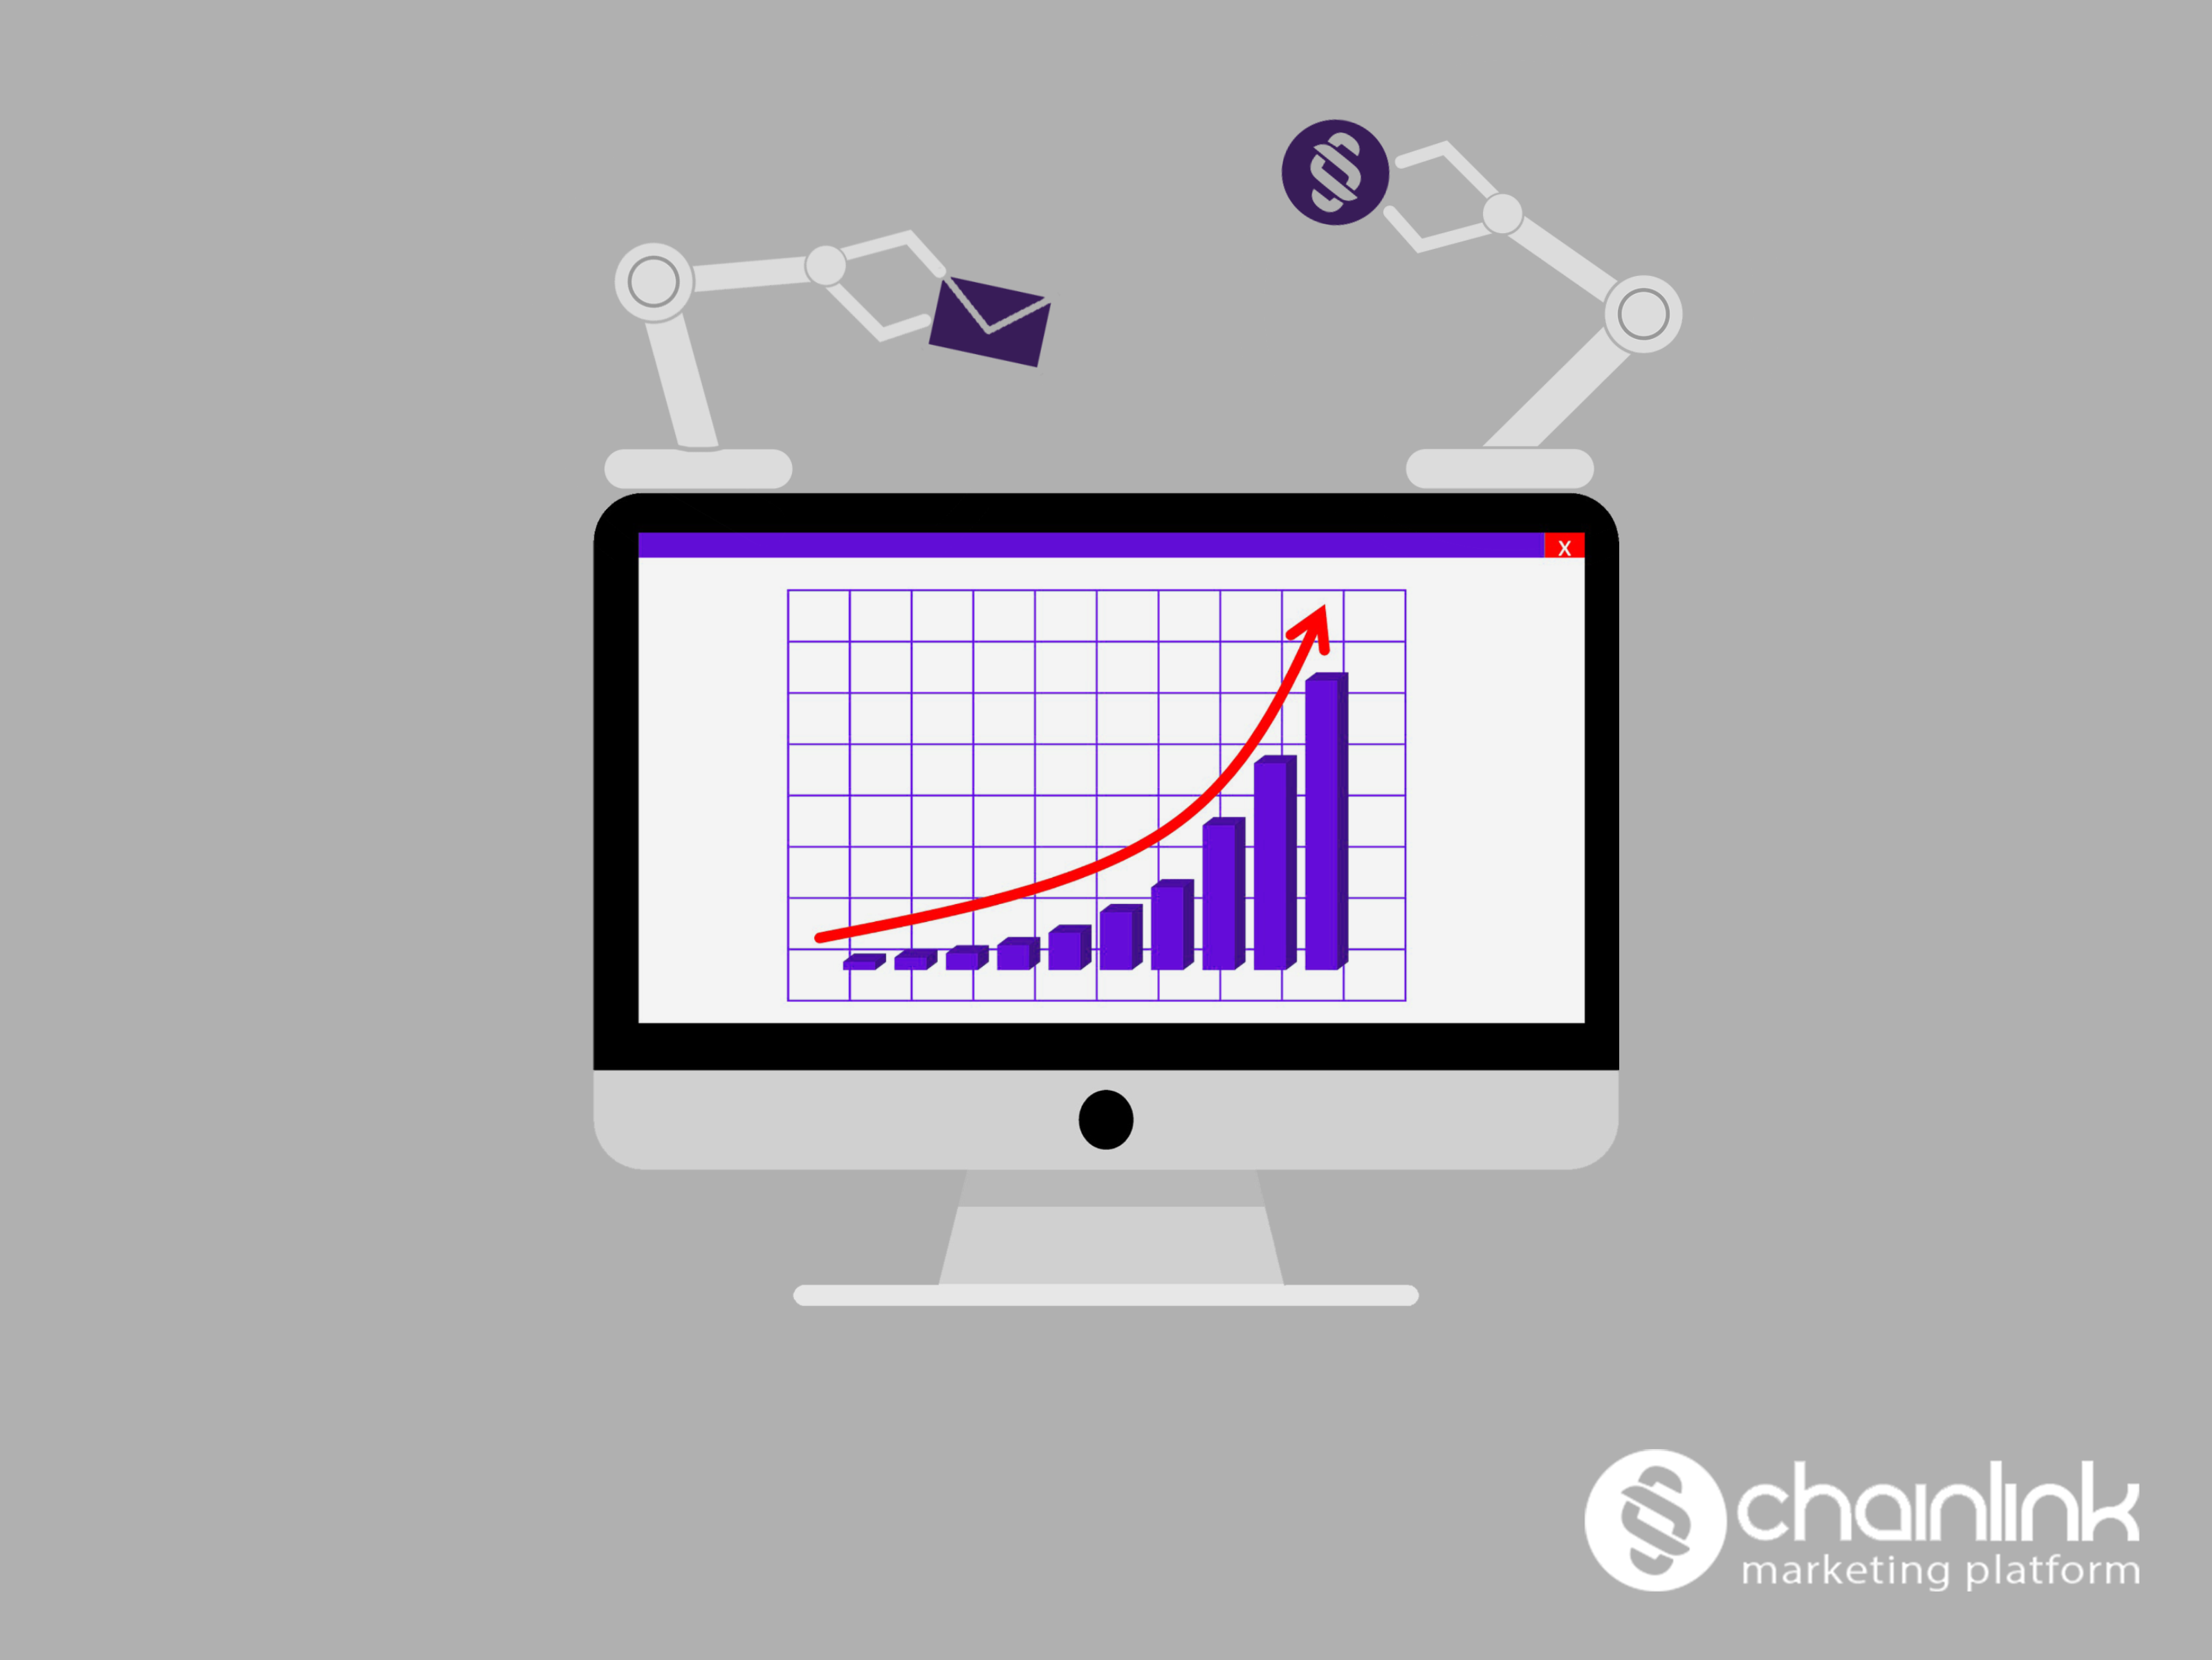 Chainlink Relationship Marketing- marketing automation problems